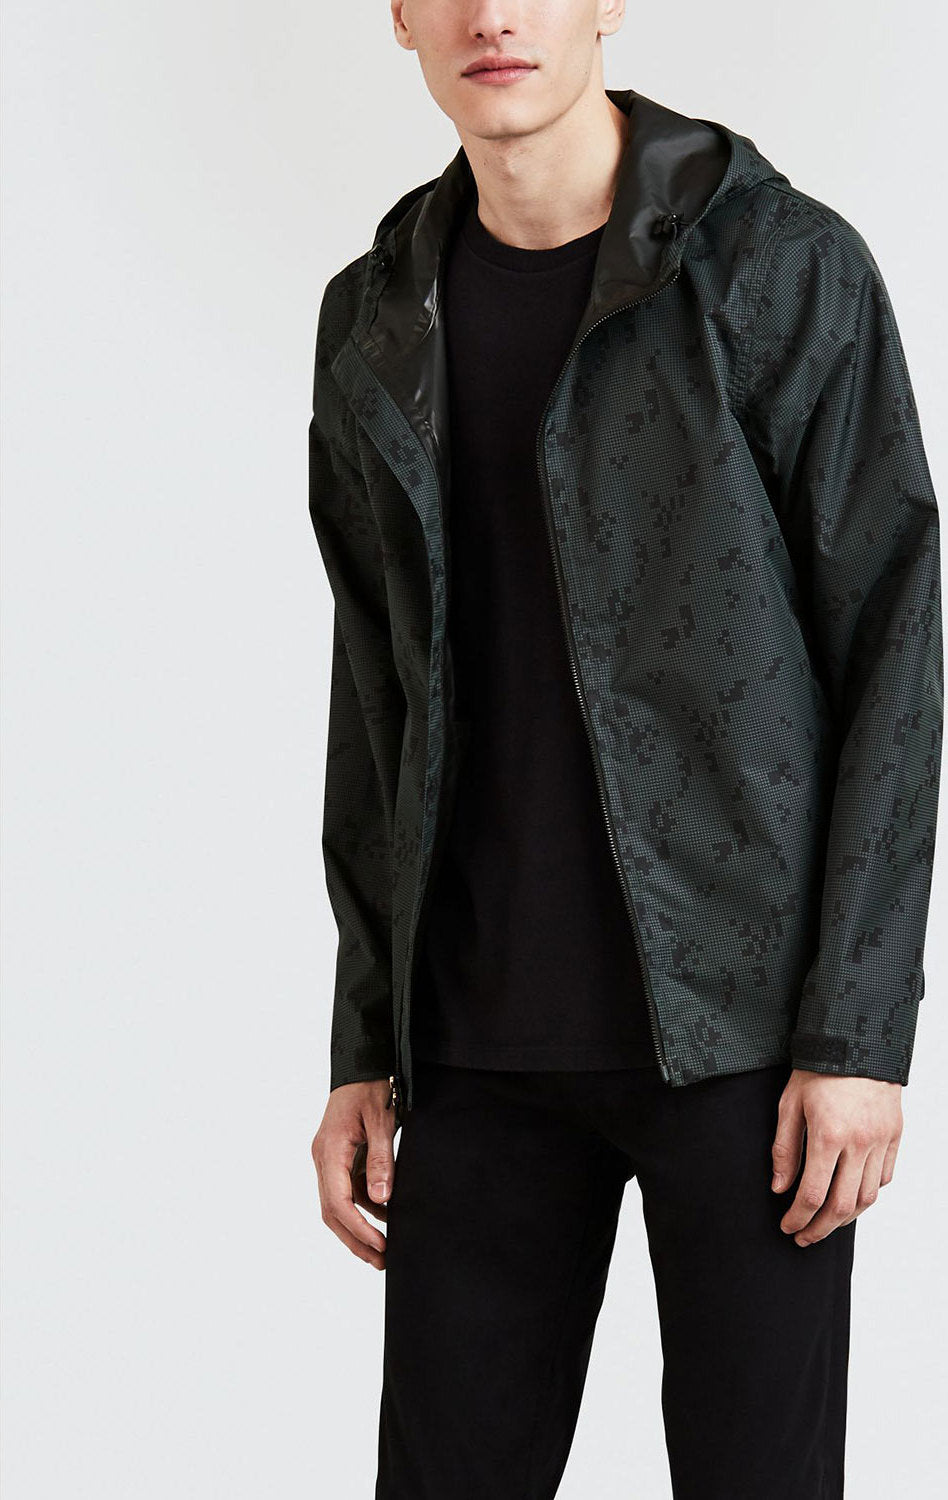 f0b2c896 Levi's Commuter Pro Echelon Windbreaker - Men's | The Last Hunt